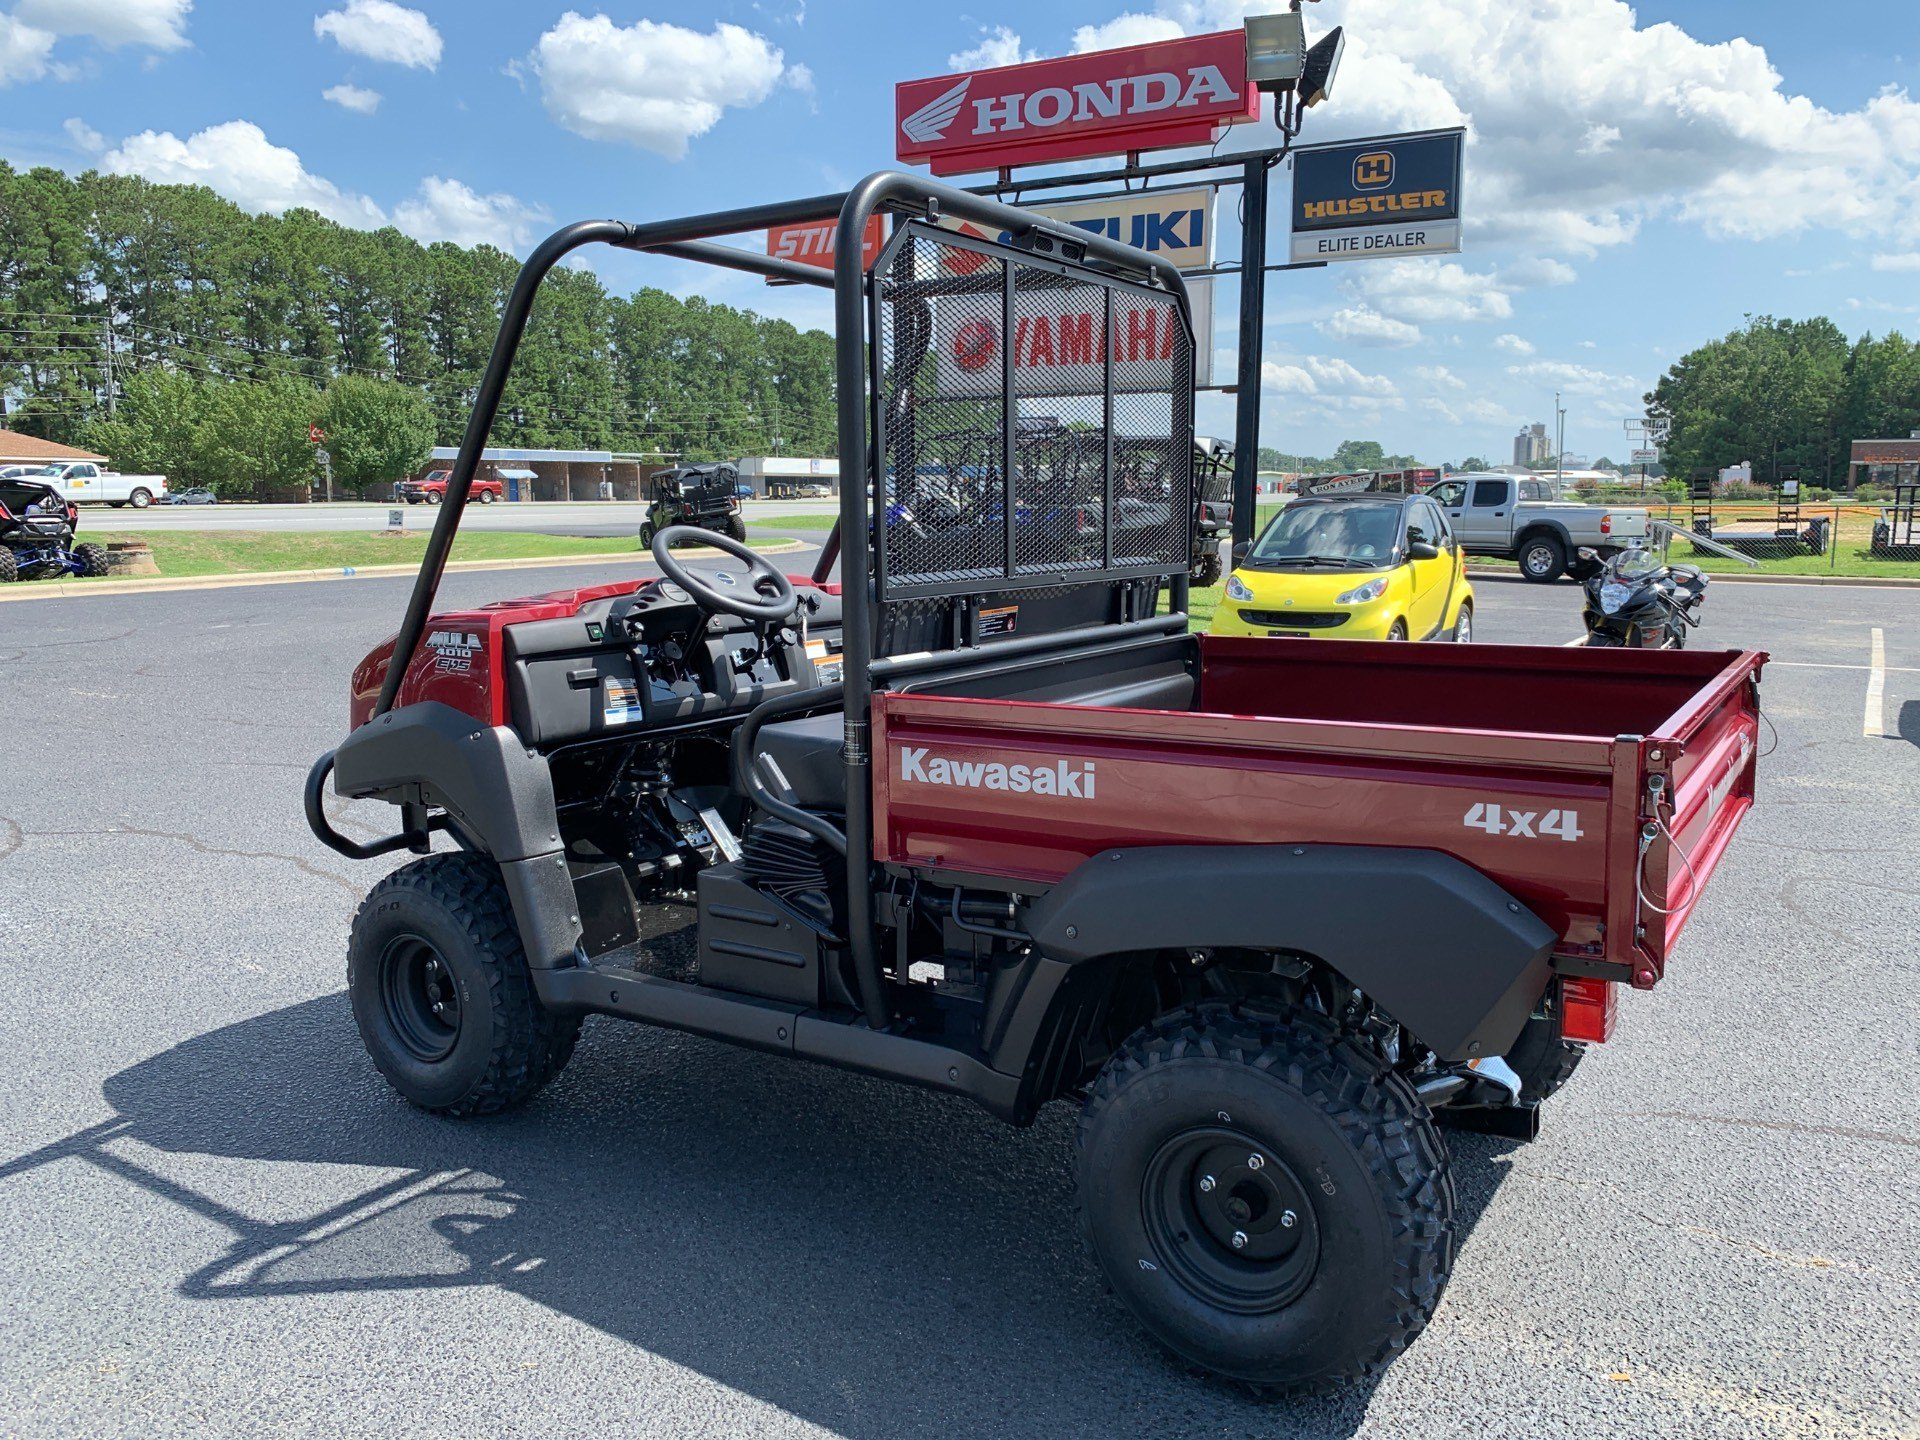 2020 Kawasaki Mule 4010 4x4 in Greenville, North Carolina - Photo 8